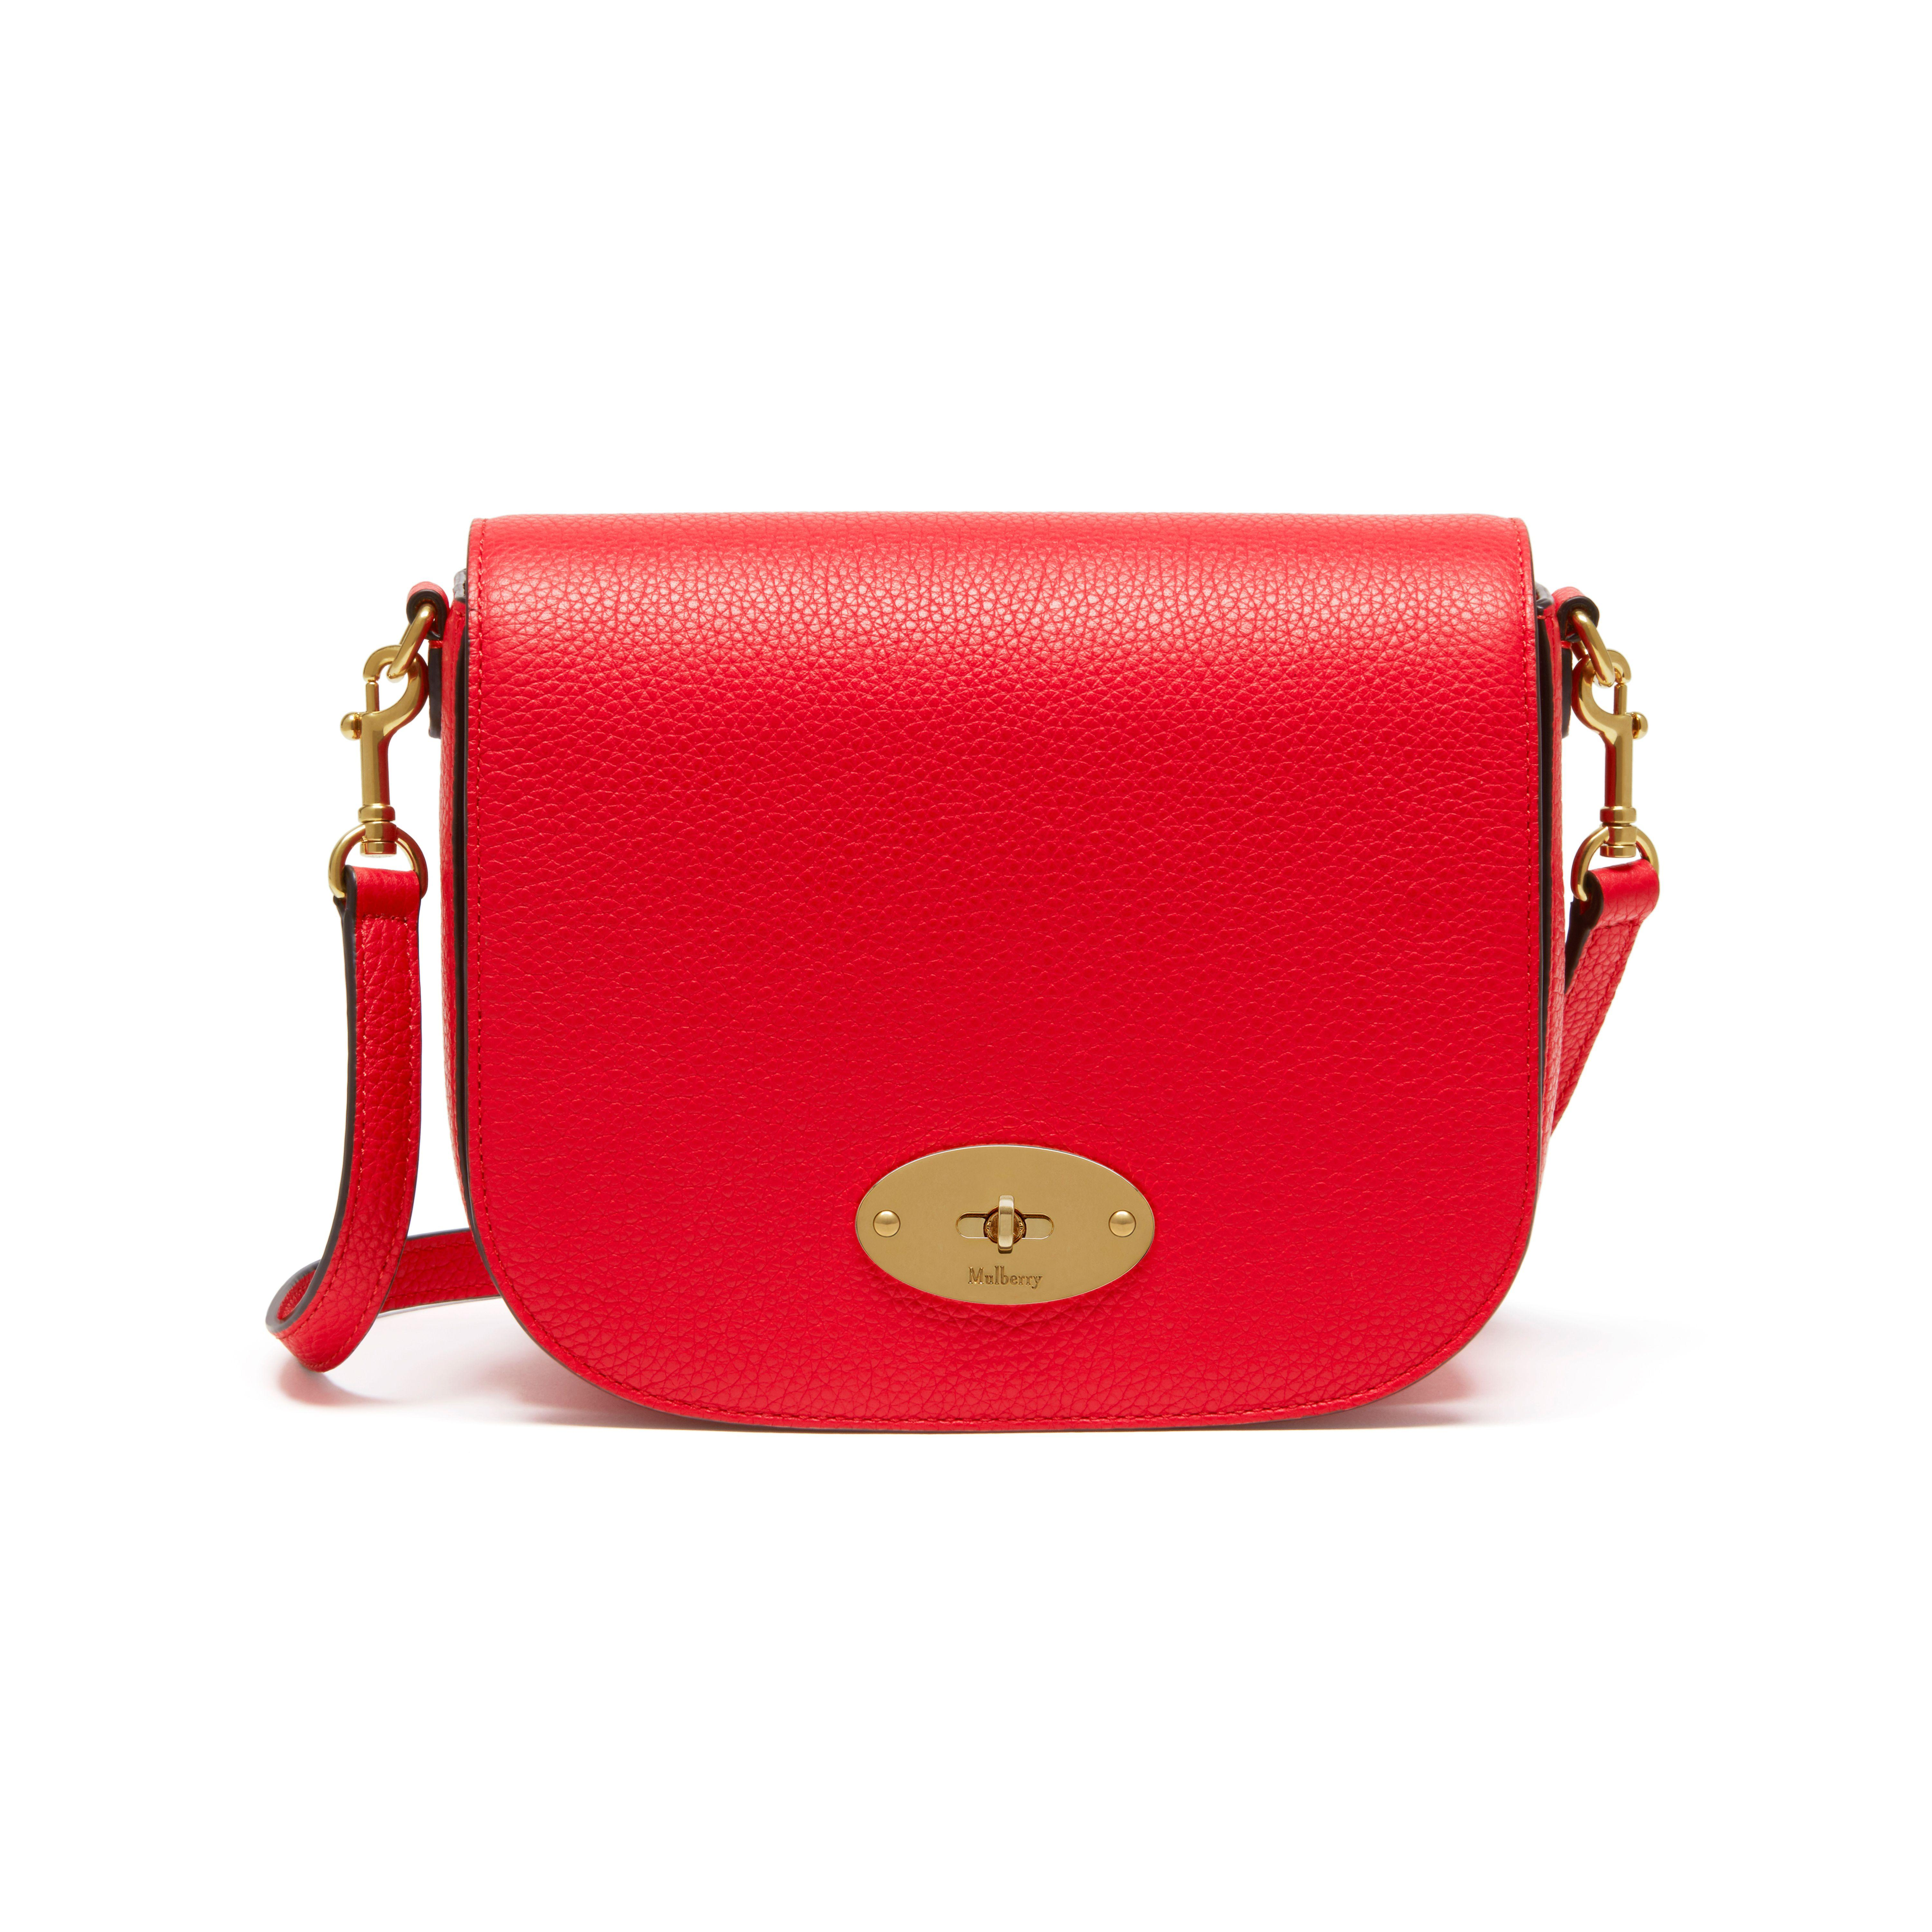 0ad2ebdb89 Mulberry Small Darley Satchel in Red - Lyst